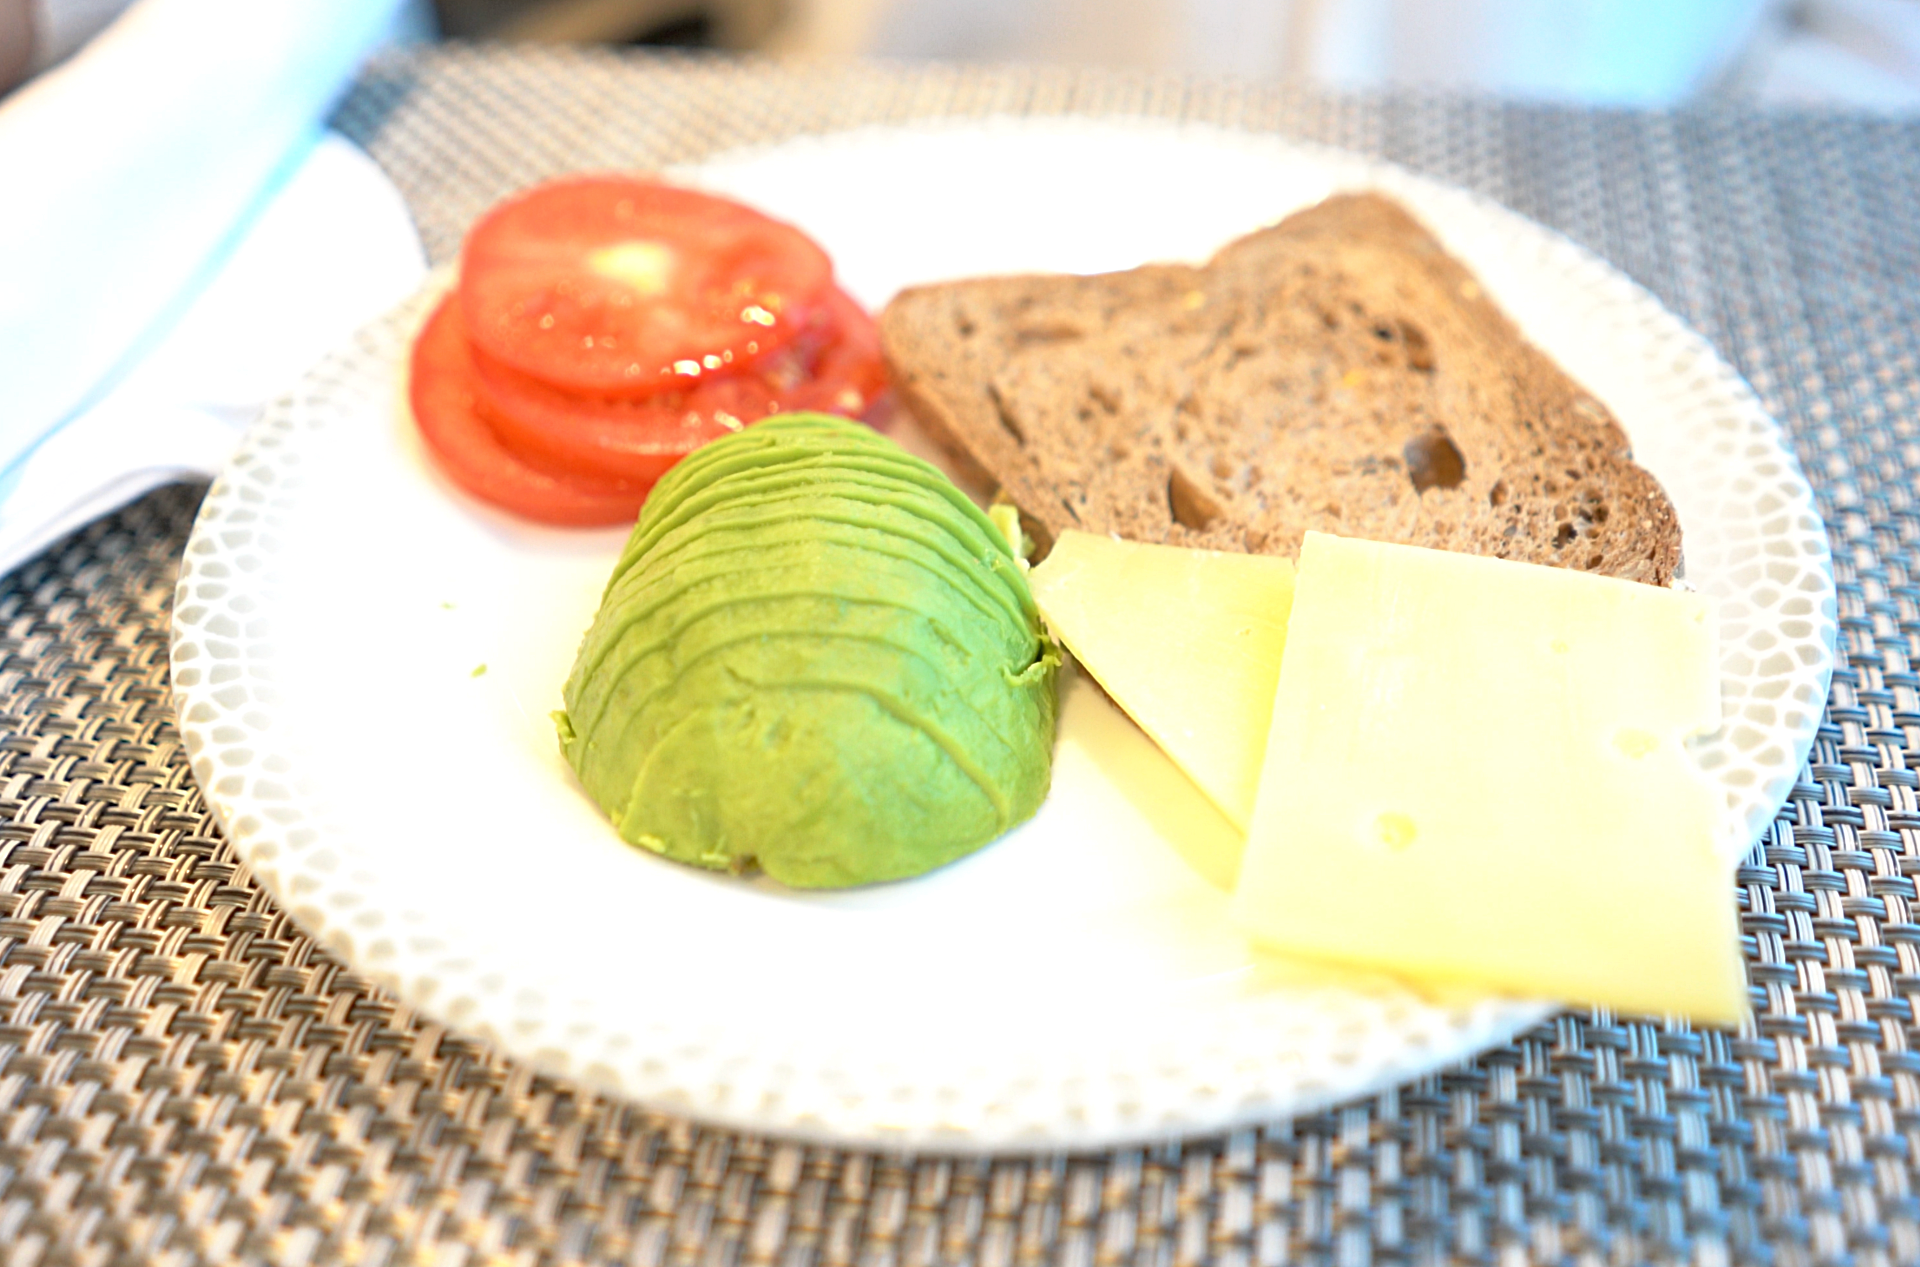 I was really pleased to find my favourite breakfast fayre, avocado in the windows cafe..